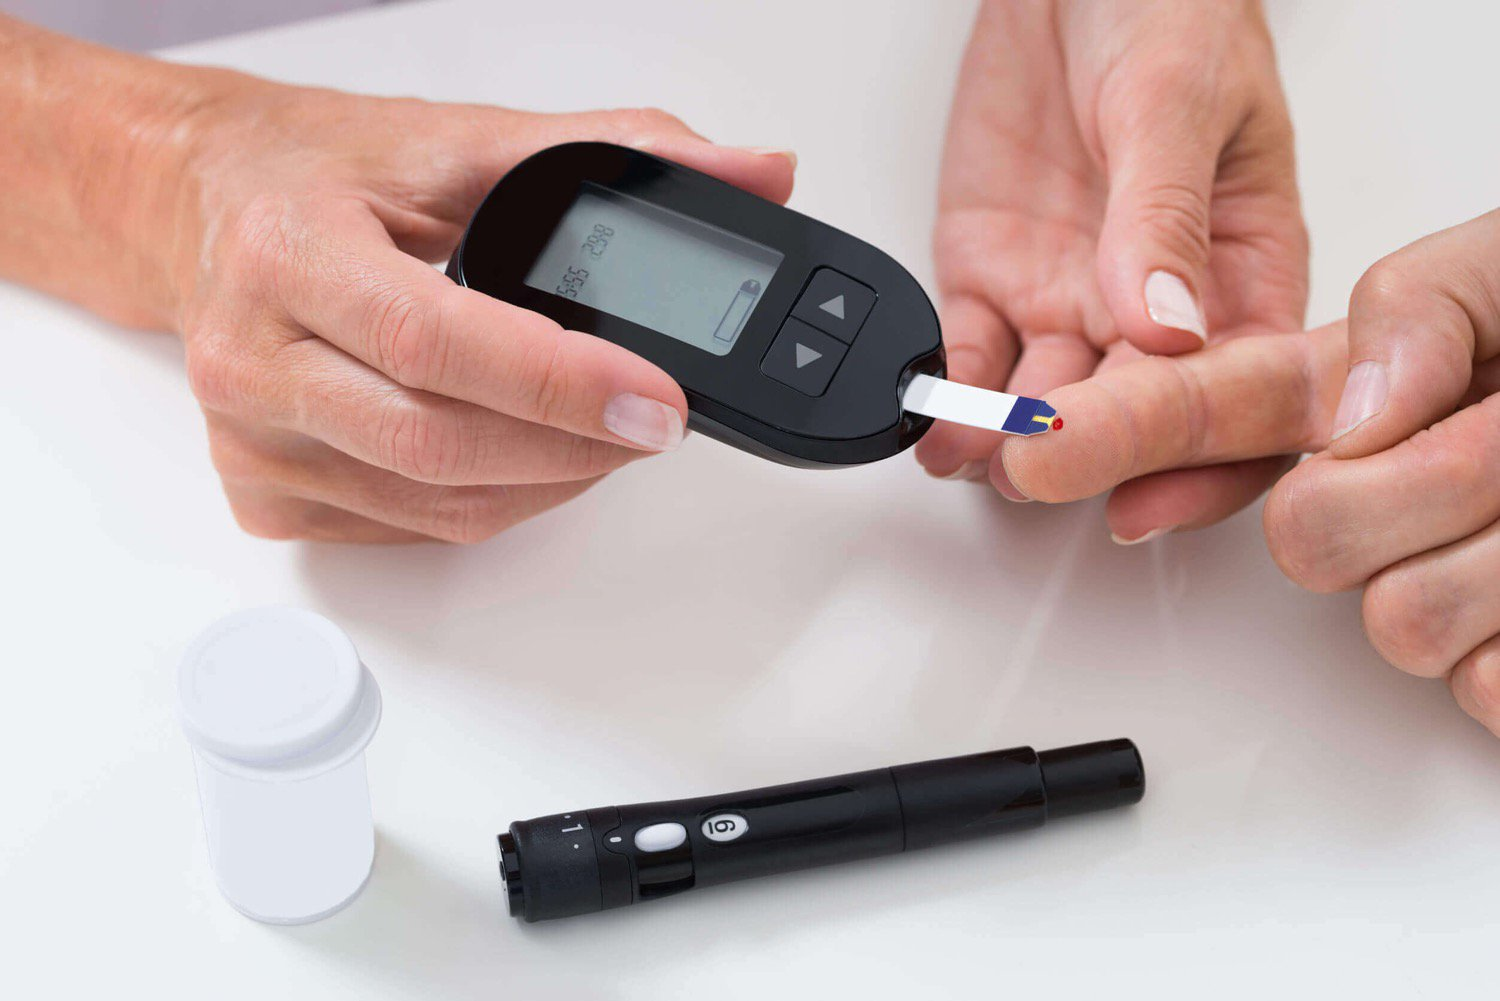 A new startup will help patients with diabetes without drugs